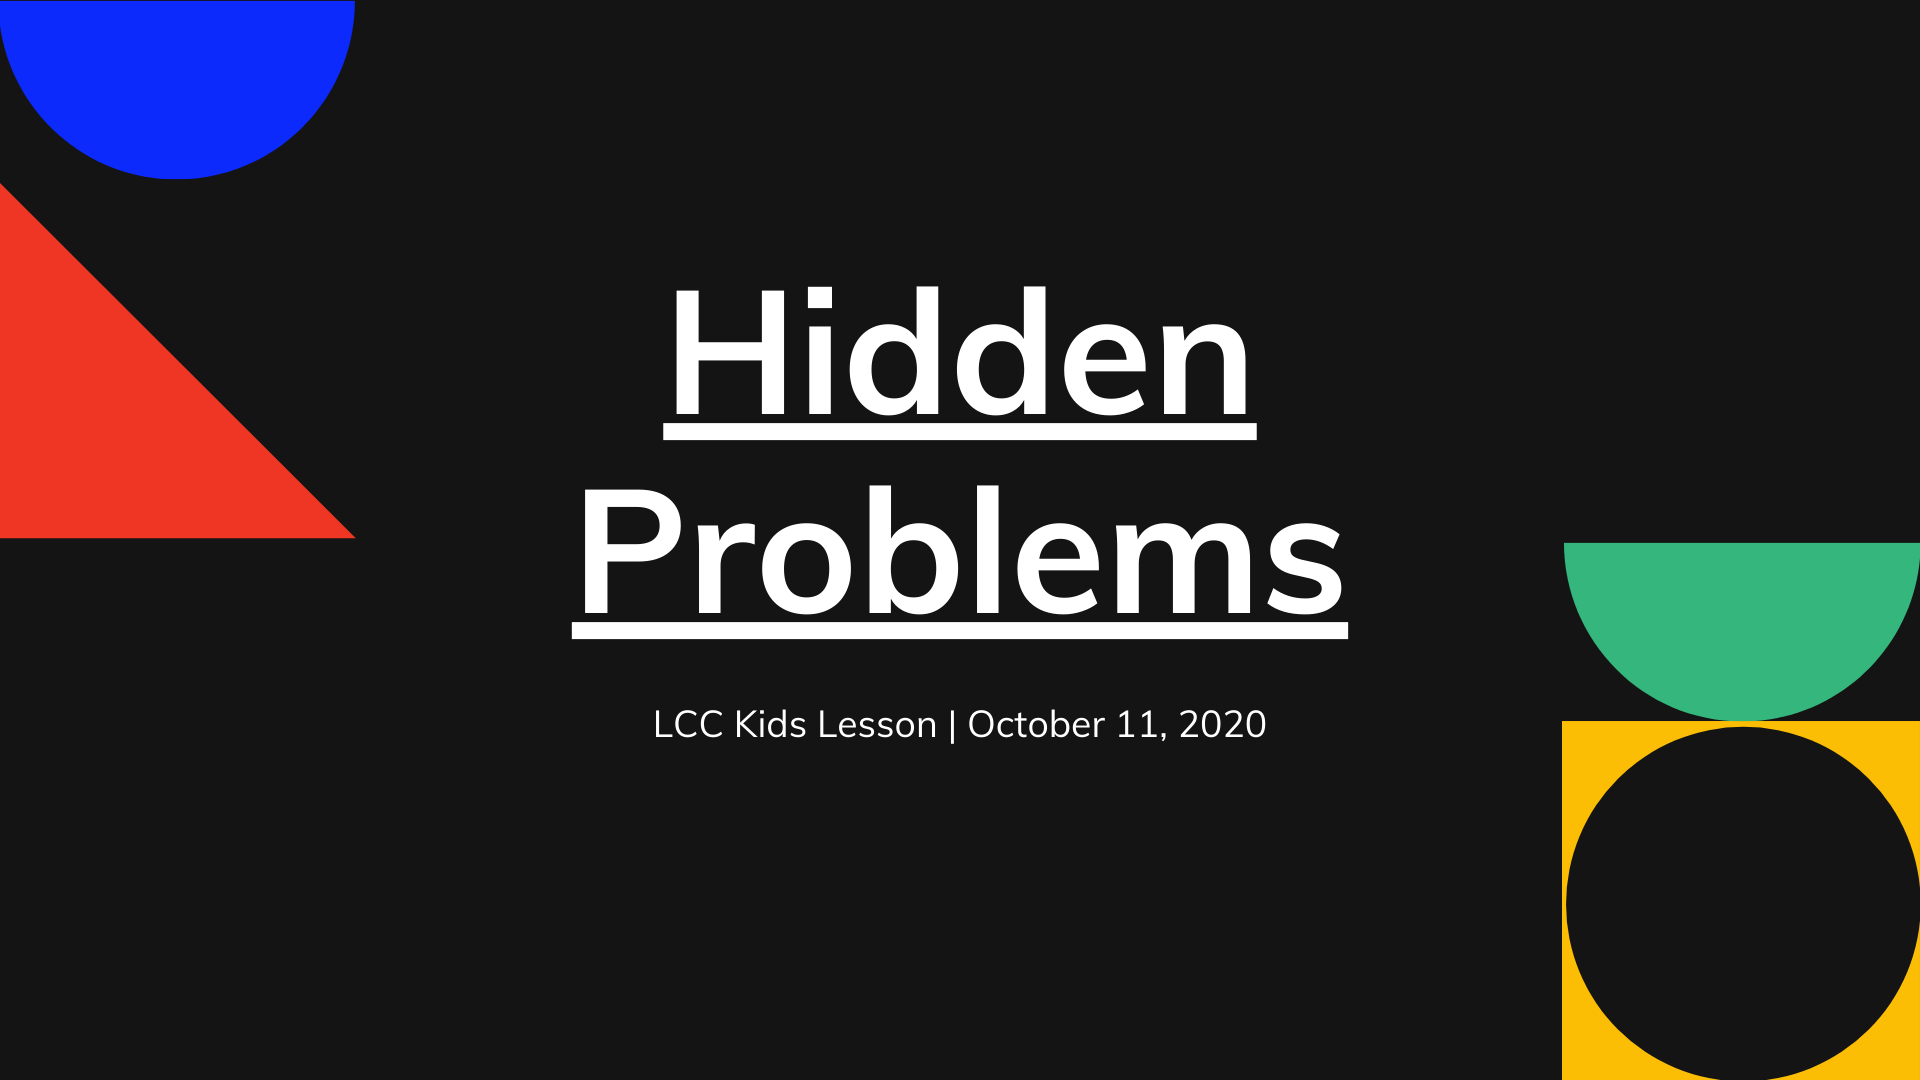 Hidden Problems banner